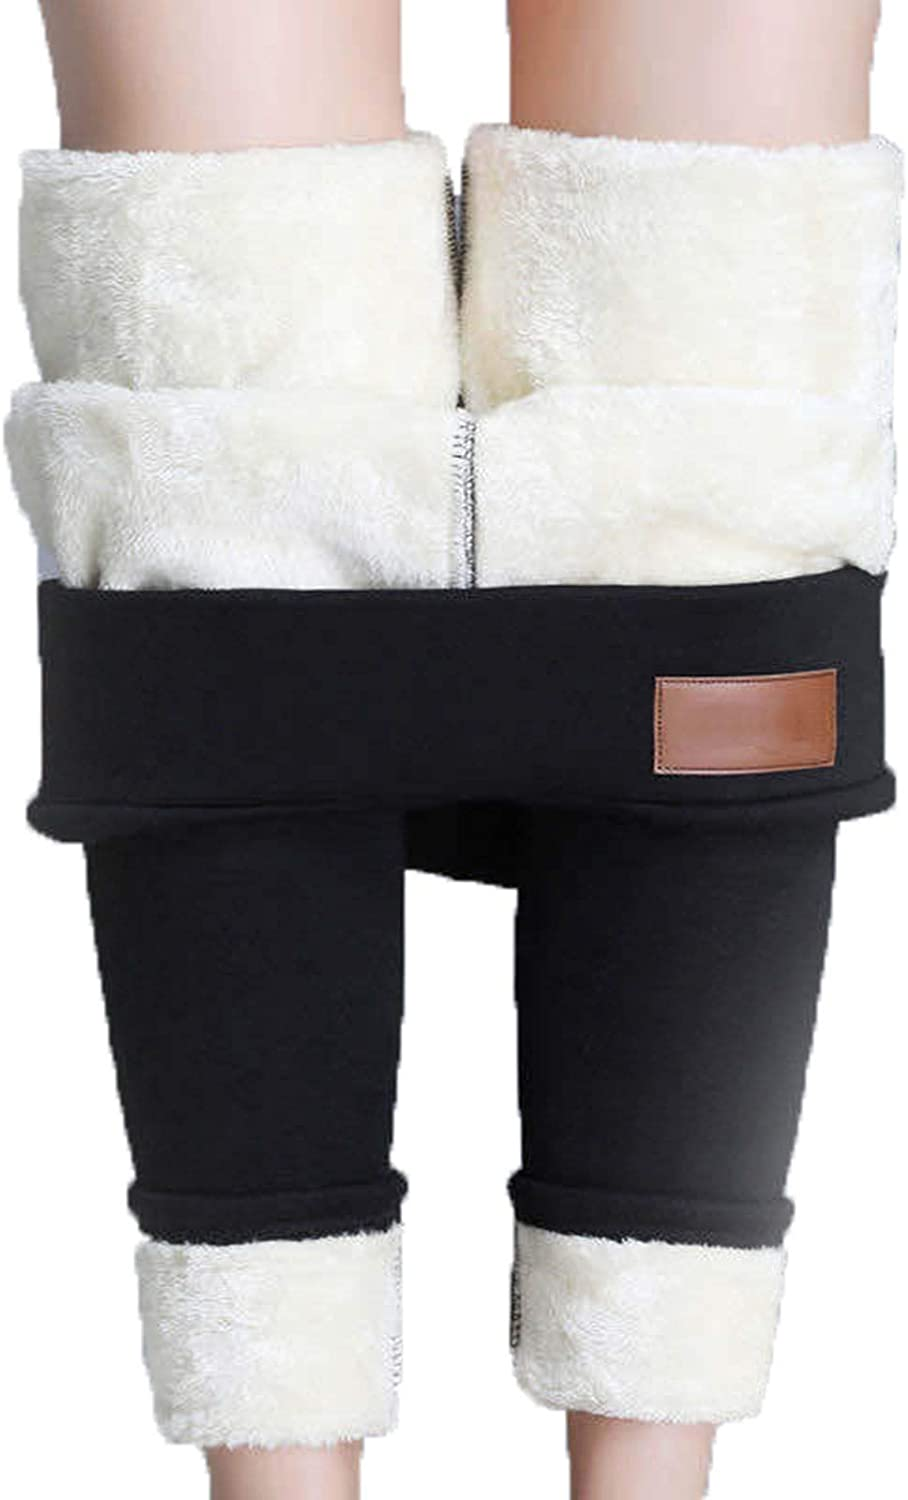 Super Thick Cashmere Leggings Trousers Finally Max 43% OFF resale start Winter Warm A Waist High